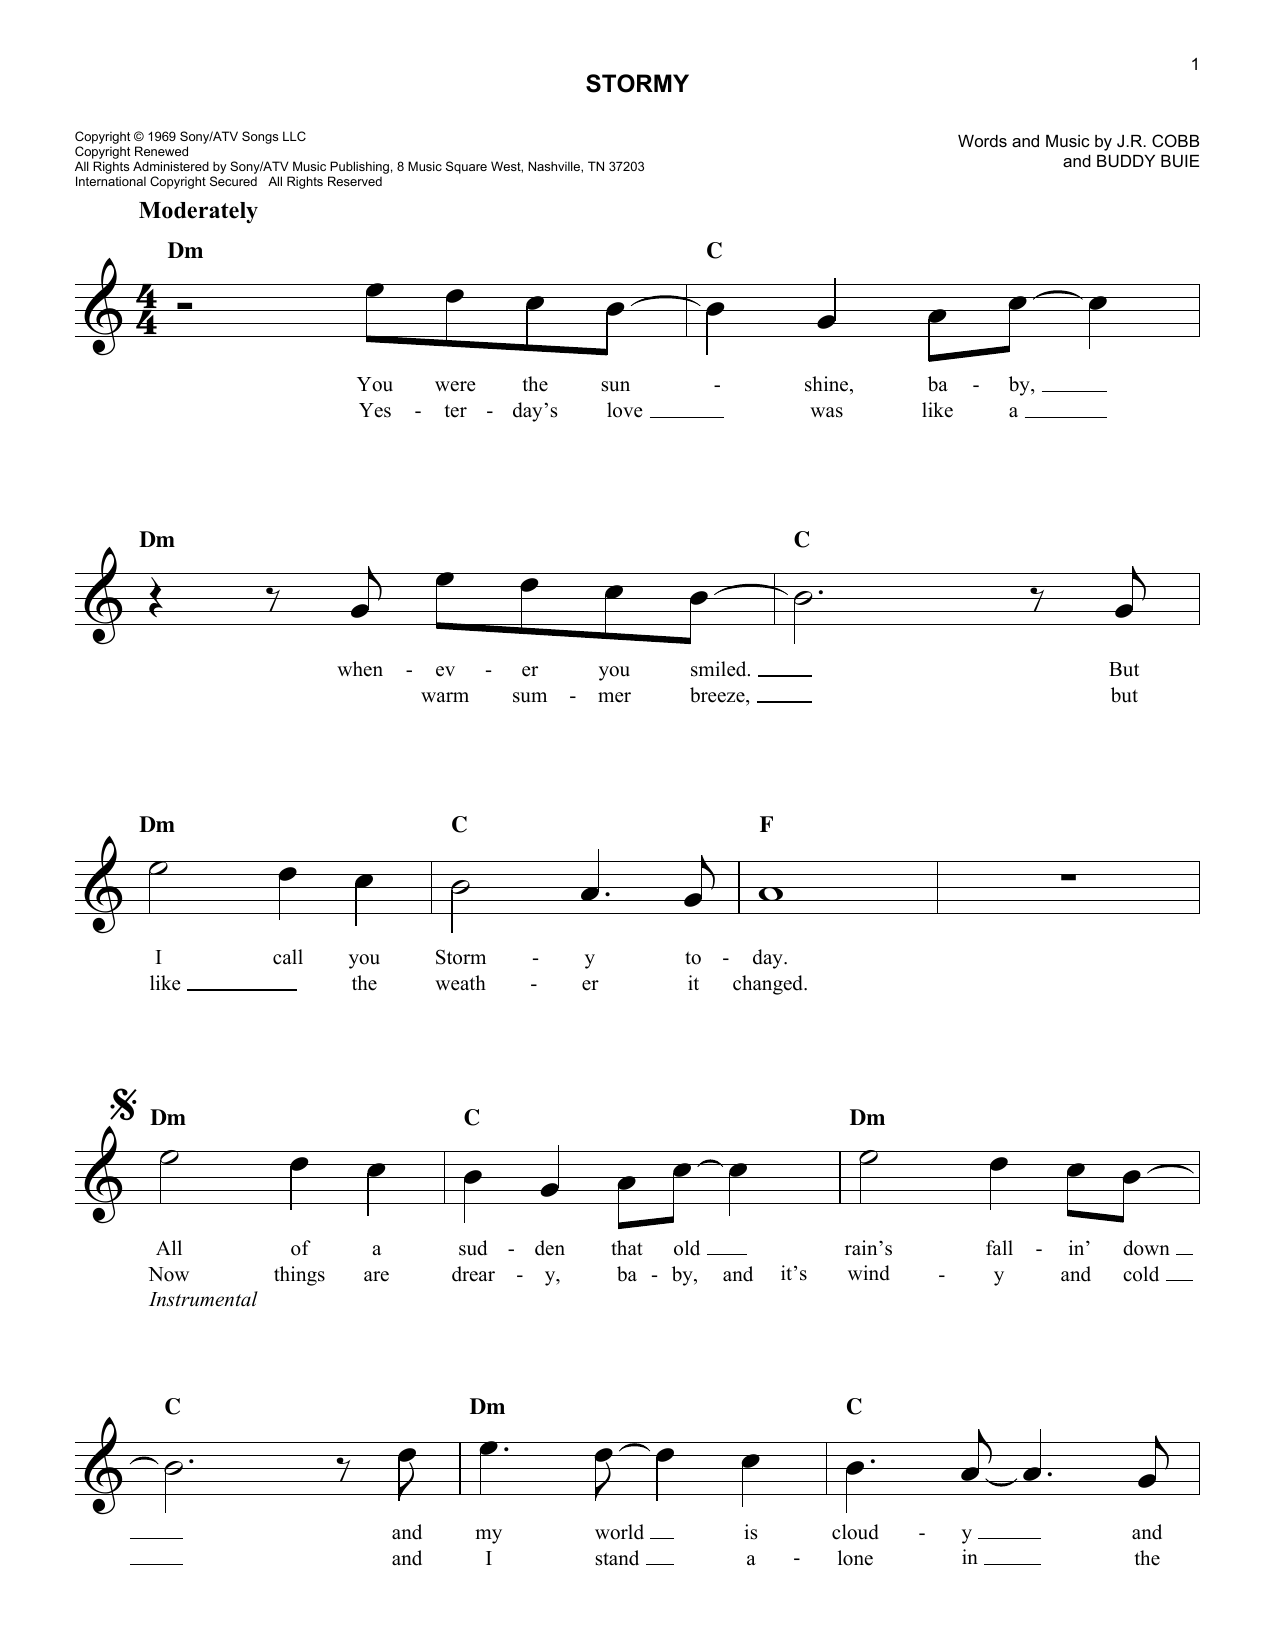 Classics IV Stormy sheet music notes and chords. Download Printable PDF.